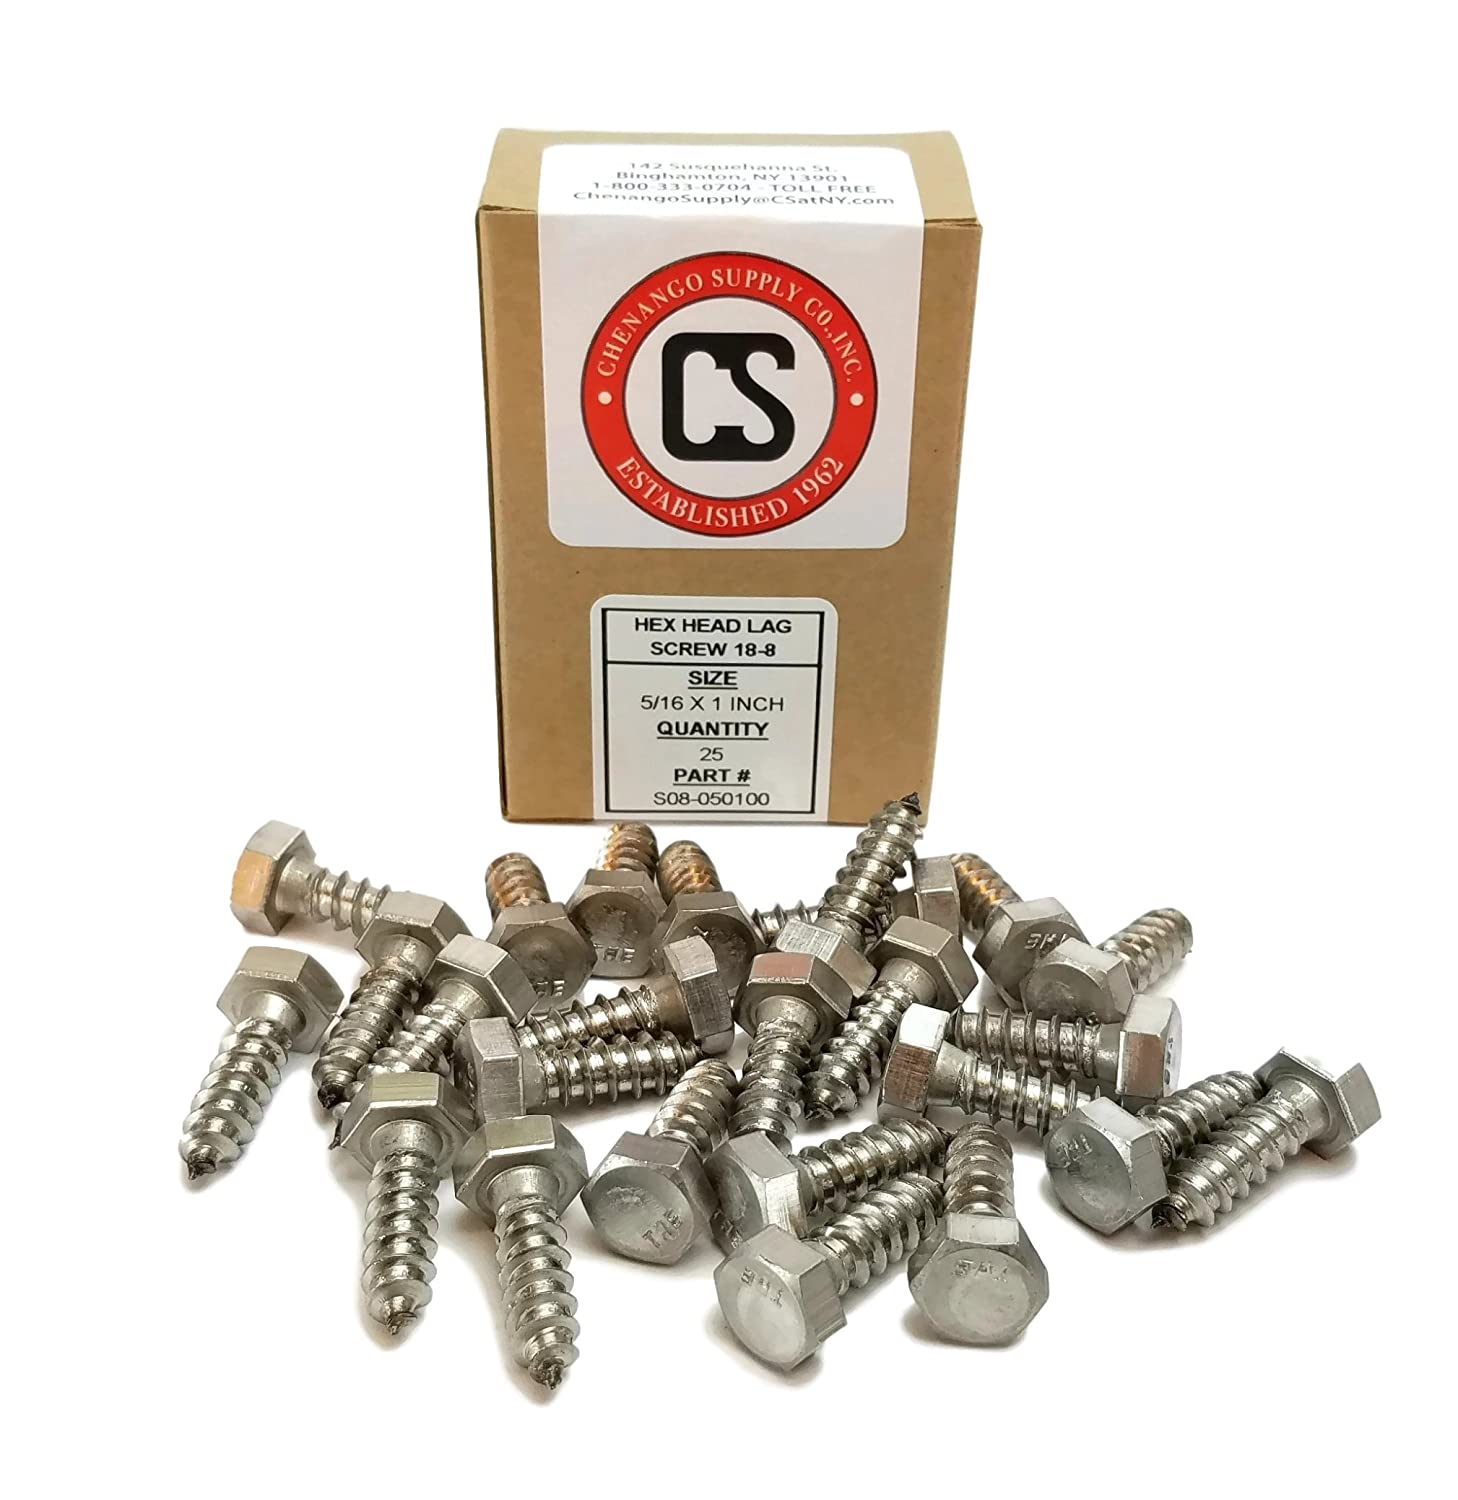 Hex Lag Screws 18-8 Stainless Steel 1//4 x 3-1//2 Qty-25